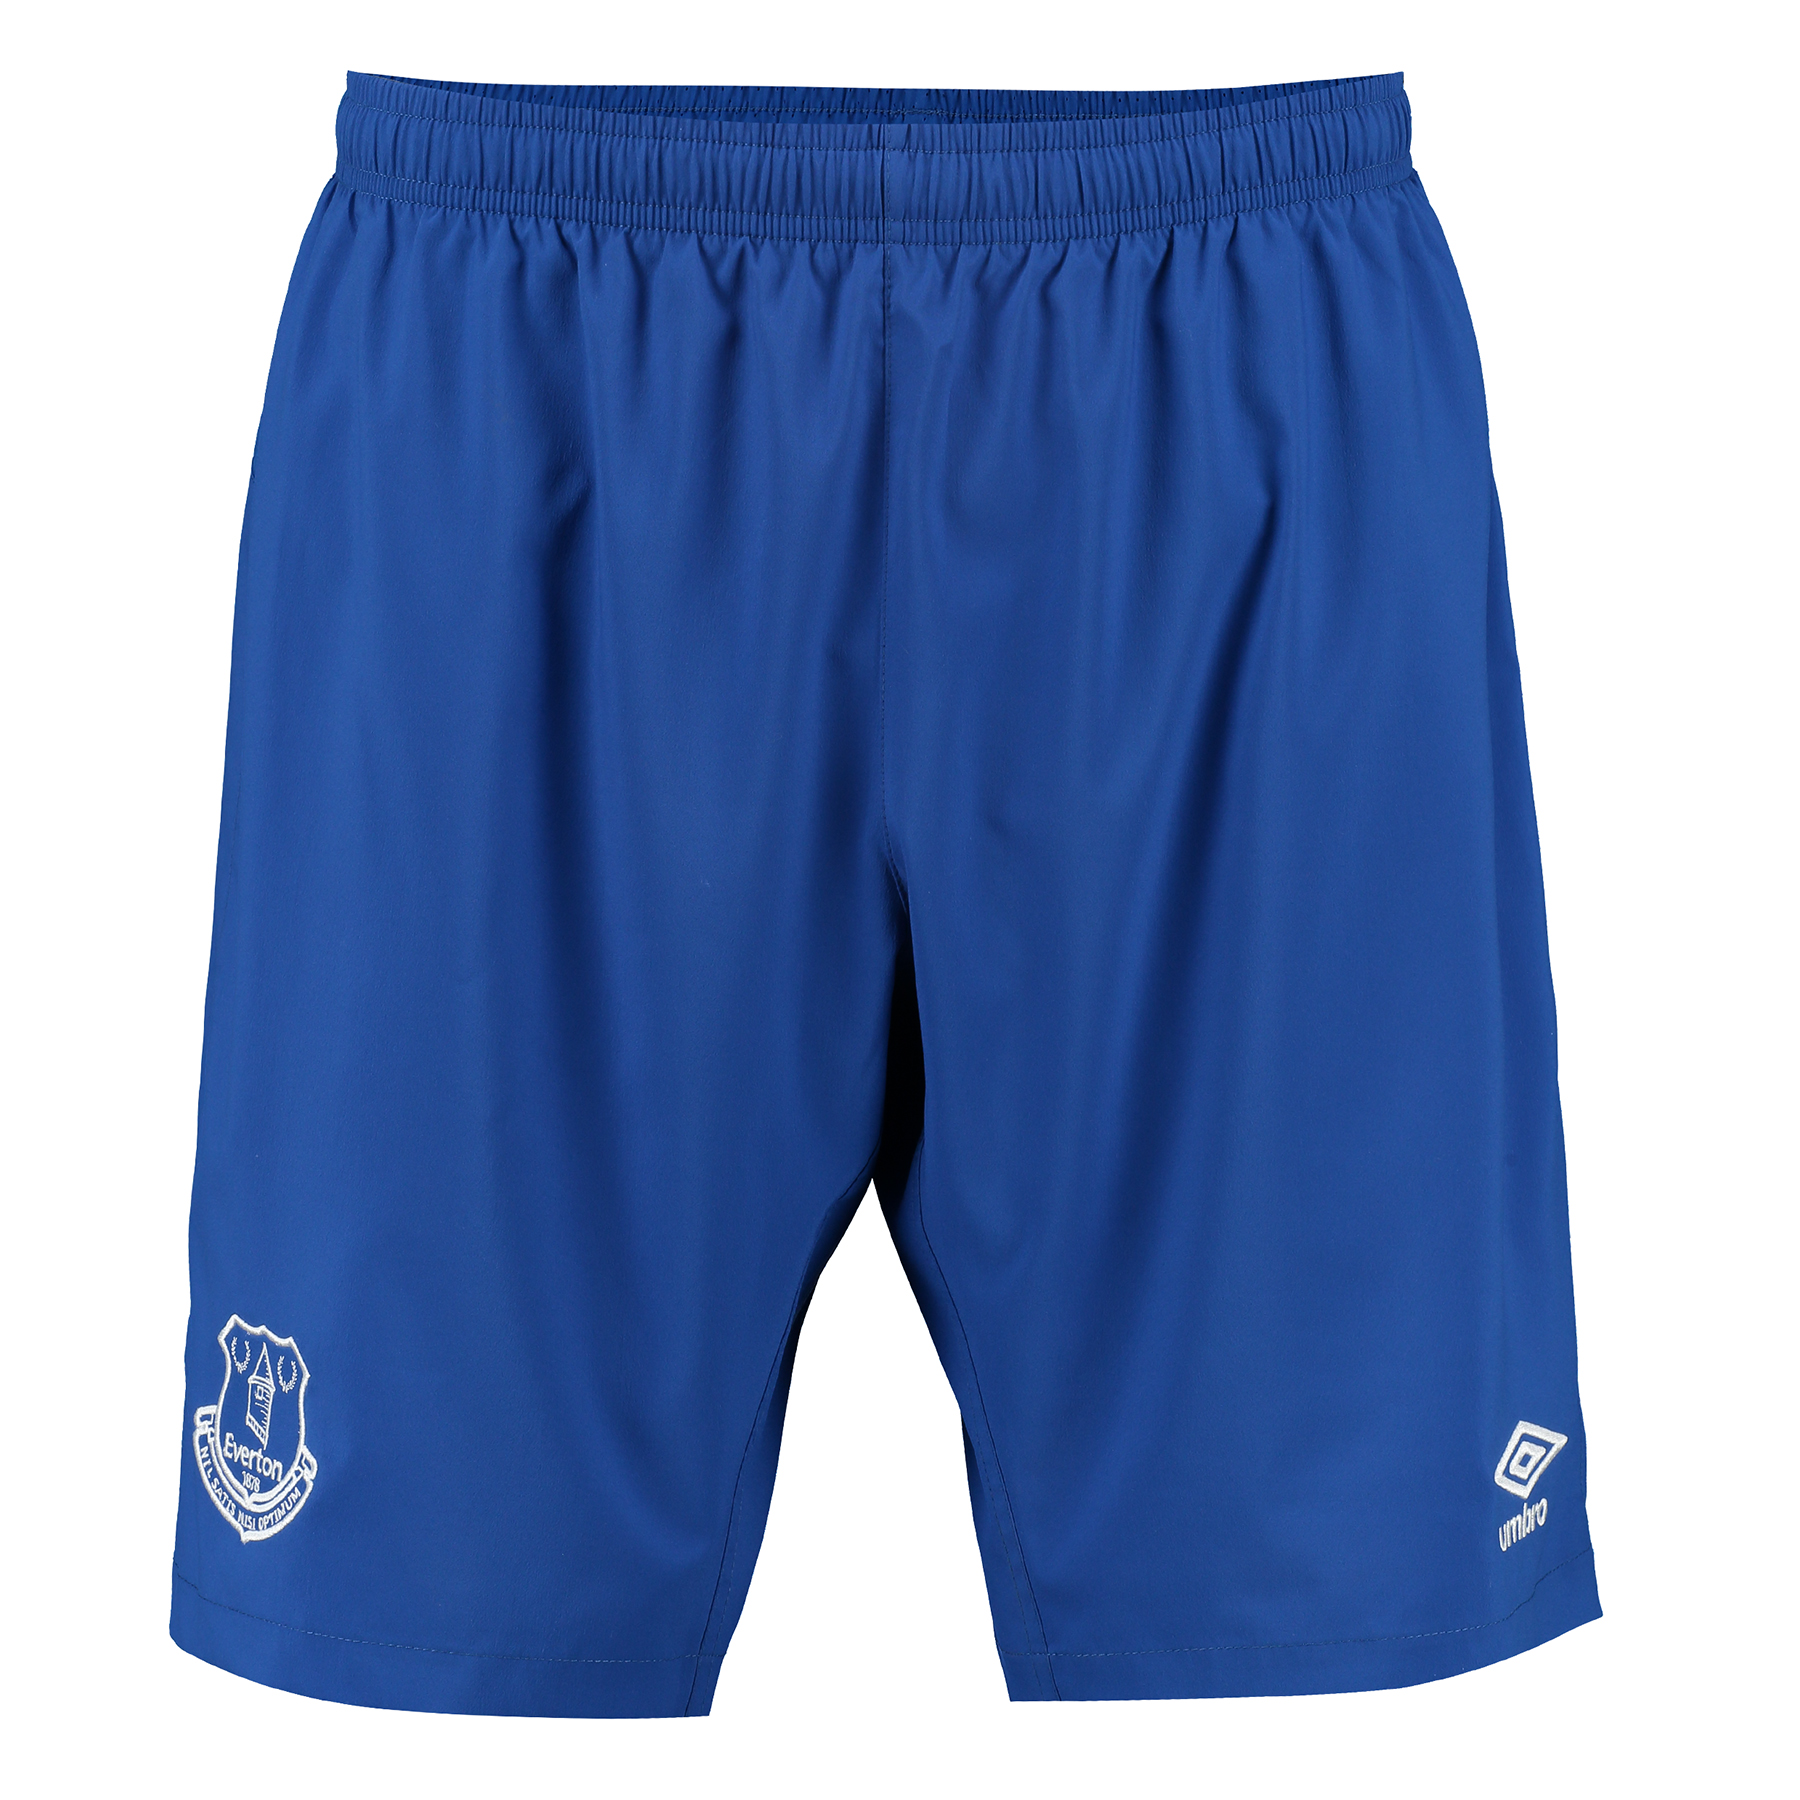 Everton Home Change Short 2016/17